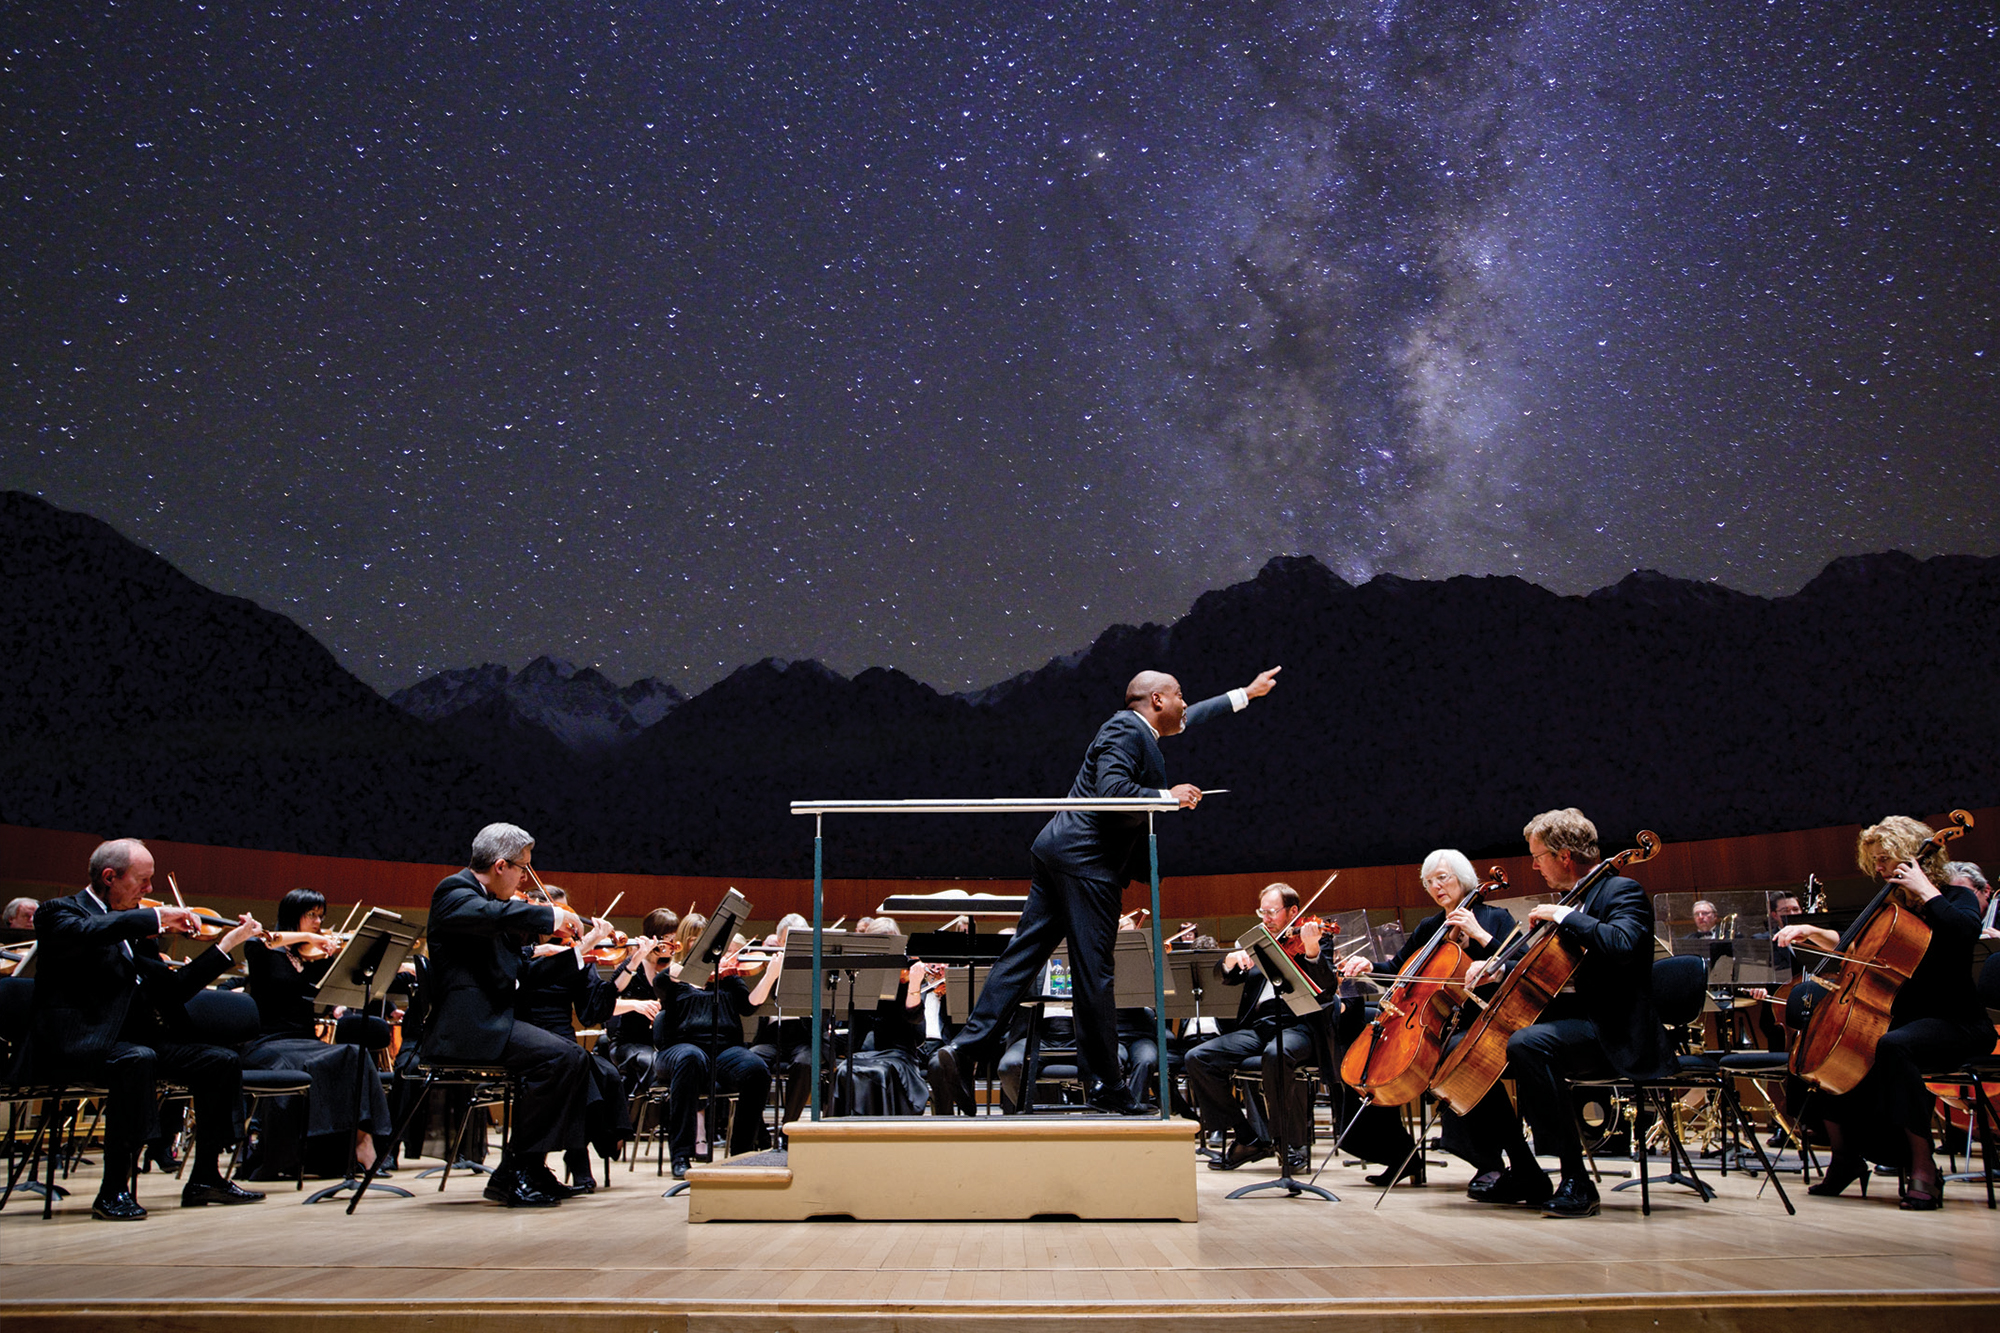 edmonton symphony orchestra playing under the stars in jasper national park